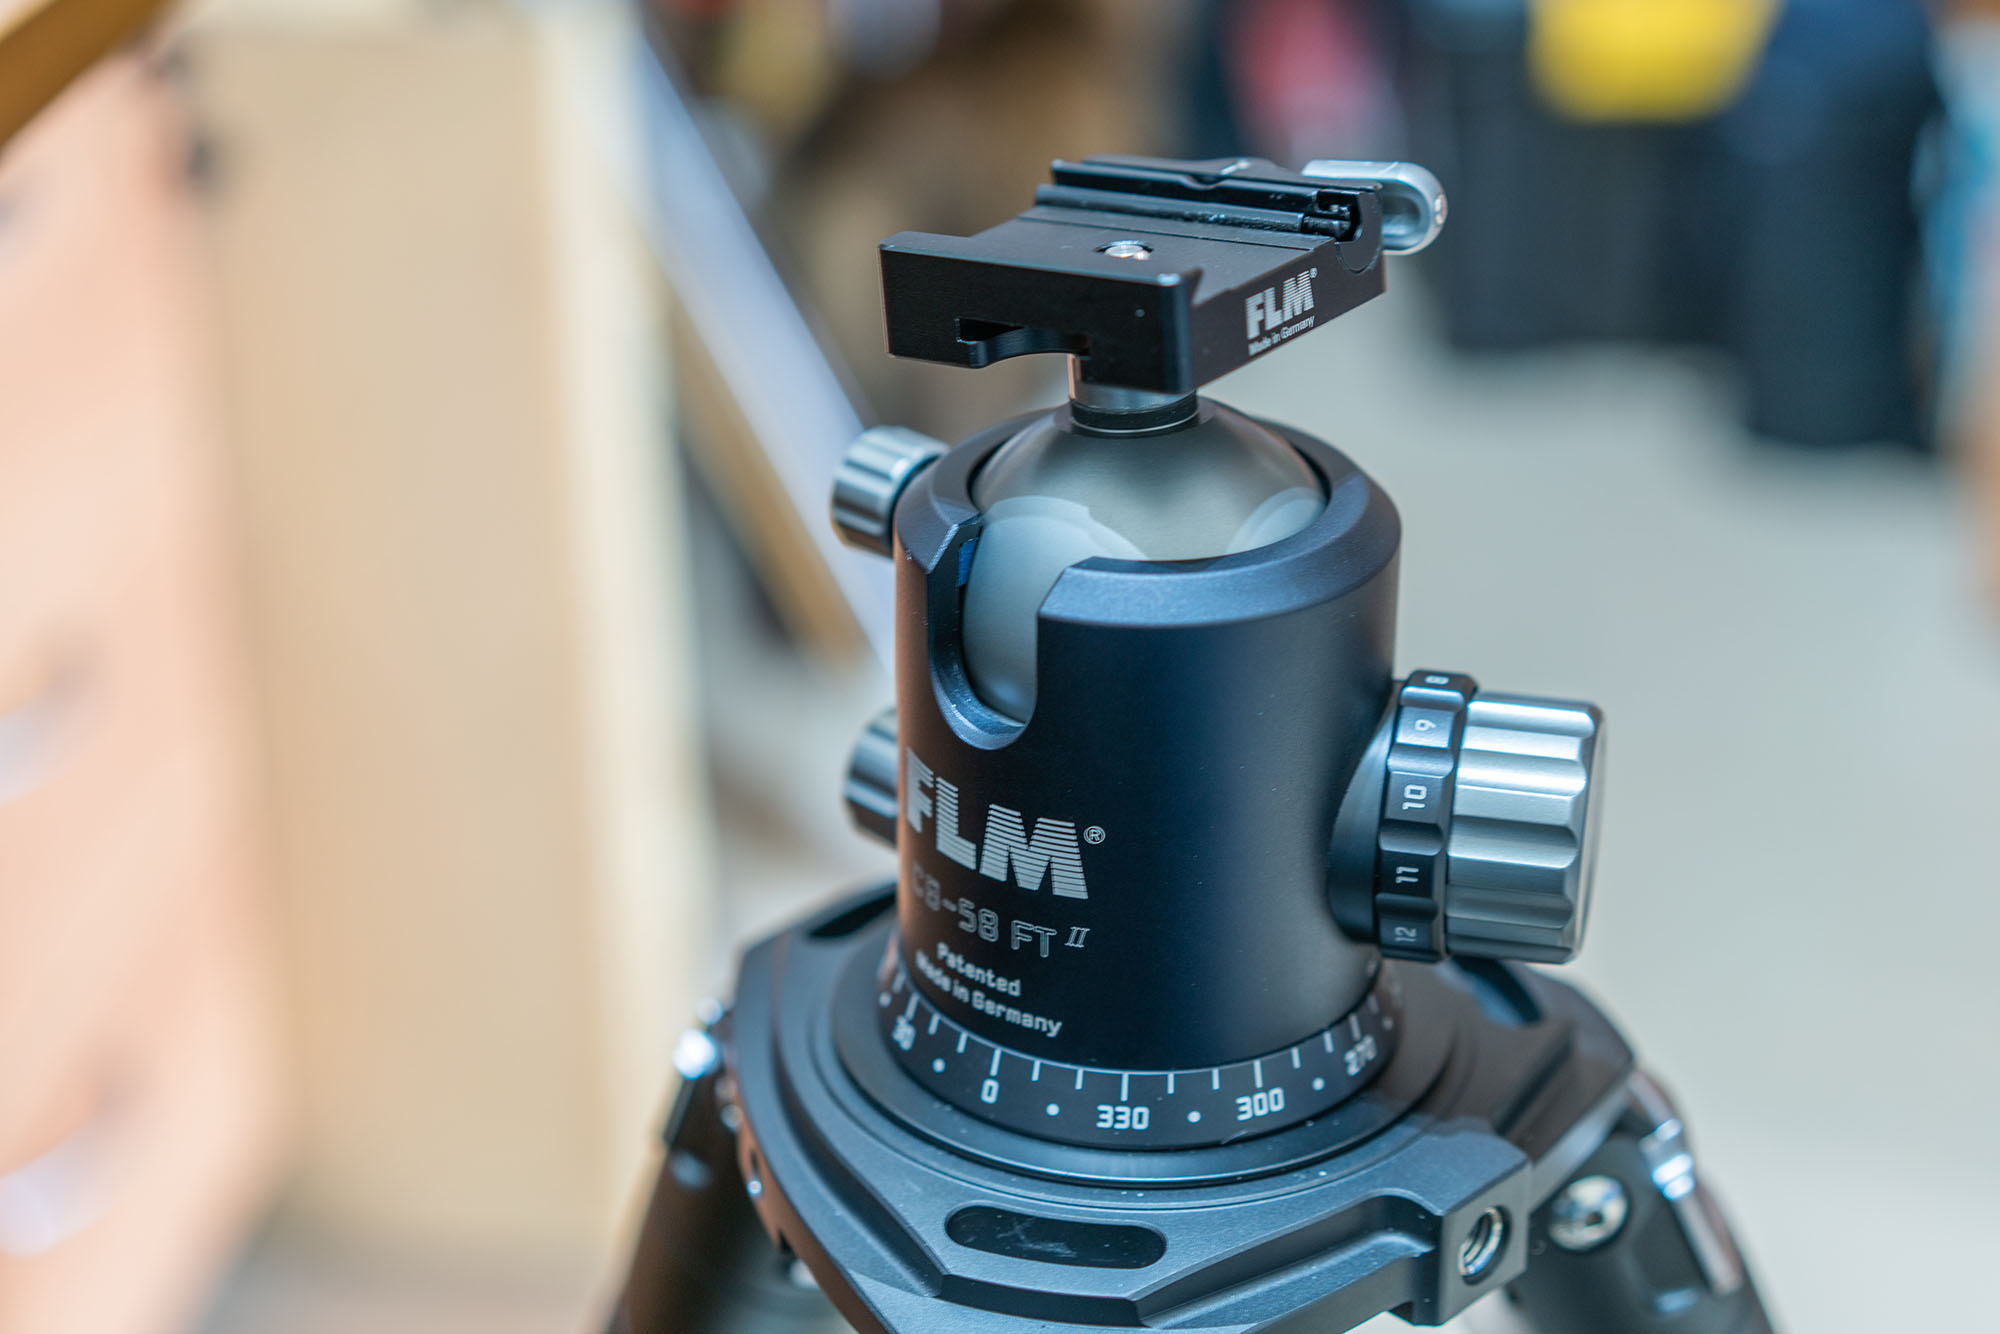 Ball head FLM CB-58 FT Mark II